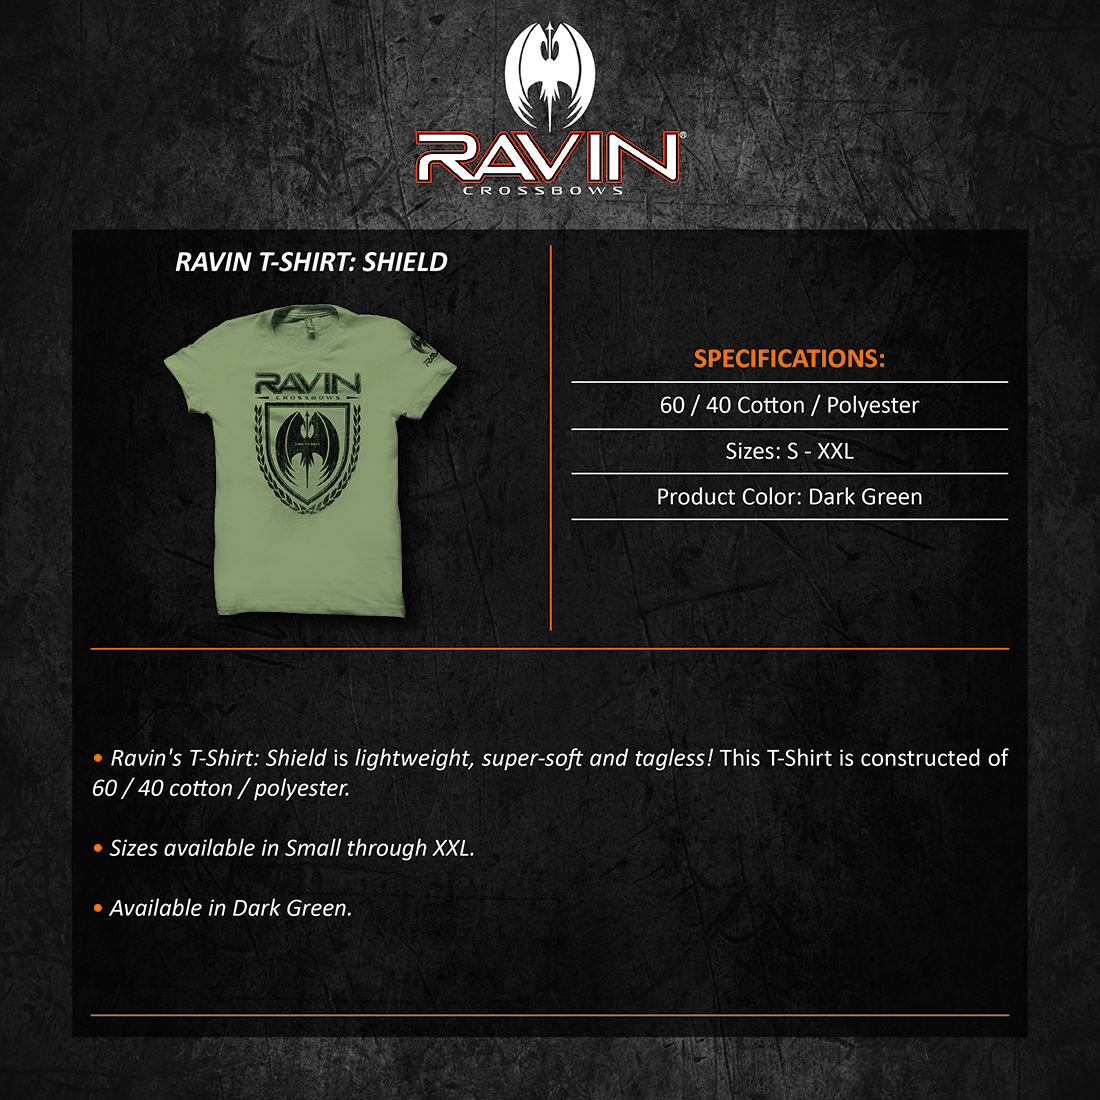 Ravin_Tshirt_Shield_Product_Description